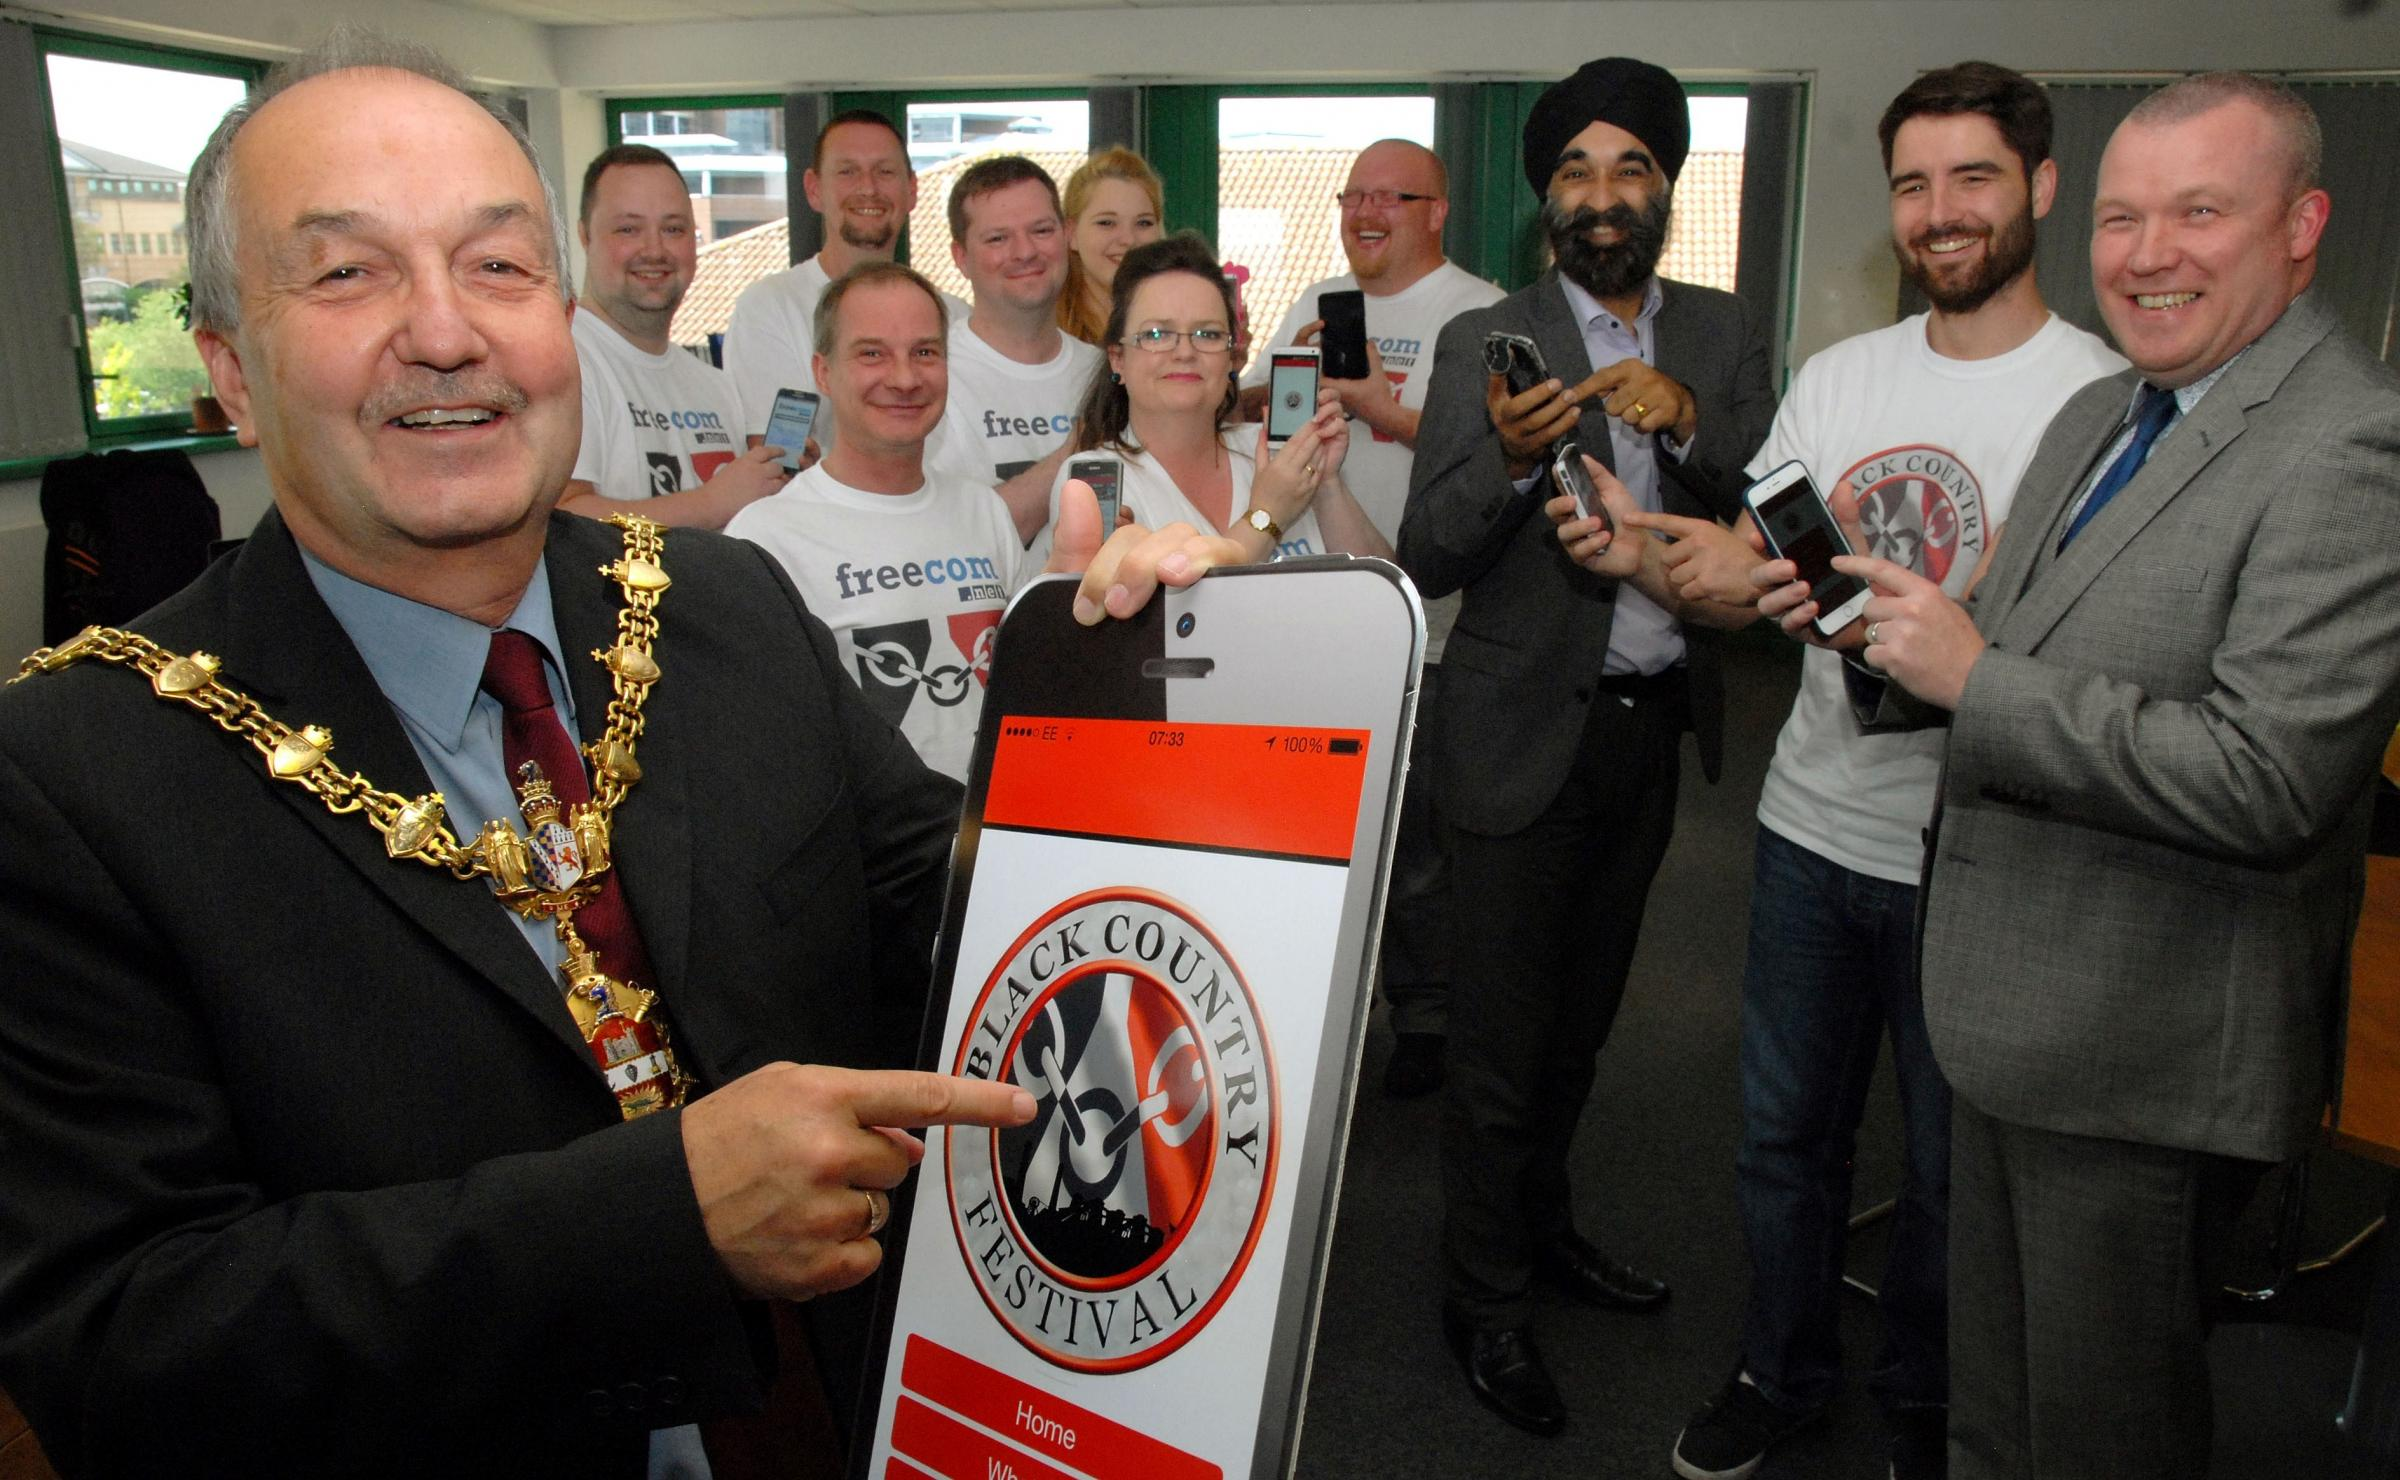 Mayor cllr Steve Waltho with, from right, Freecom dire3ctor Mike Geer, Steve Edwards - Black Country Festival, Ninder Johal - Black Country Chamber of Commerce, and staff at Freecom.